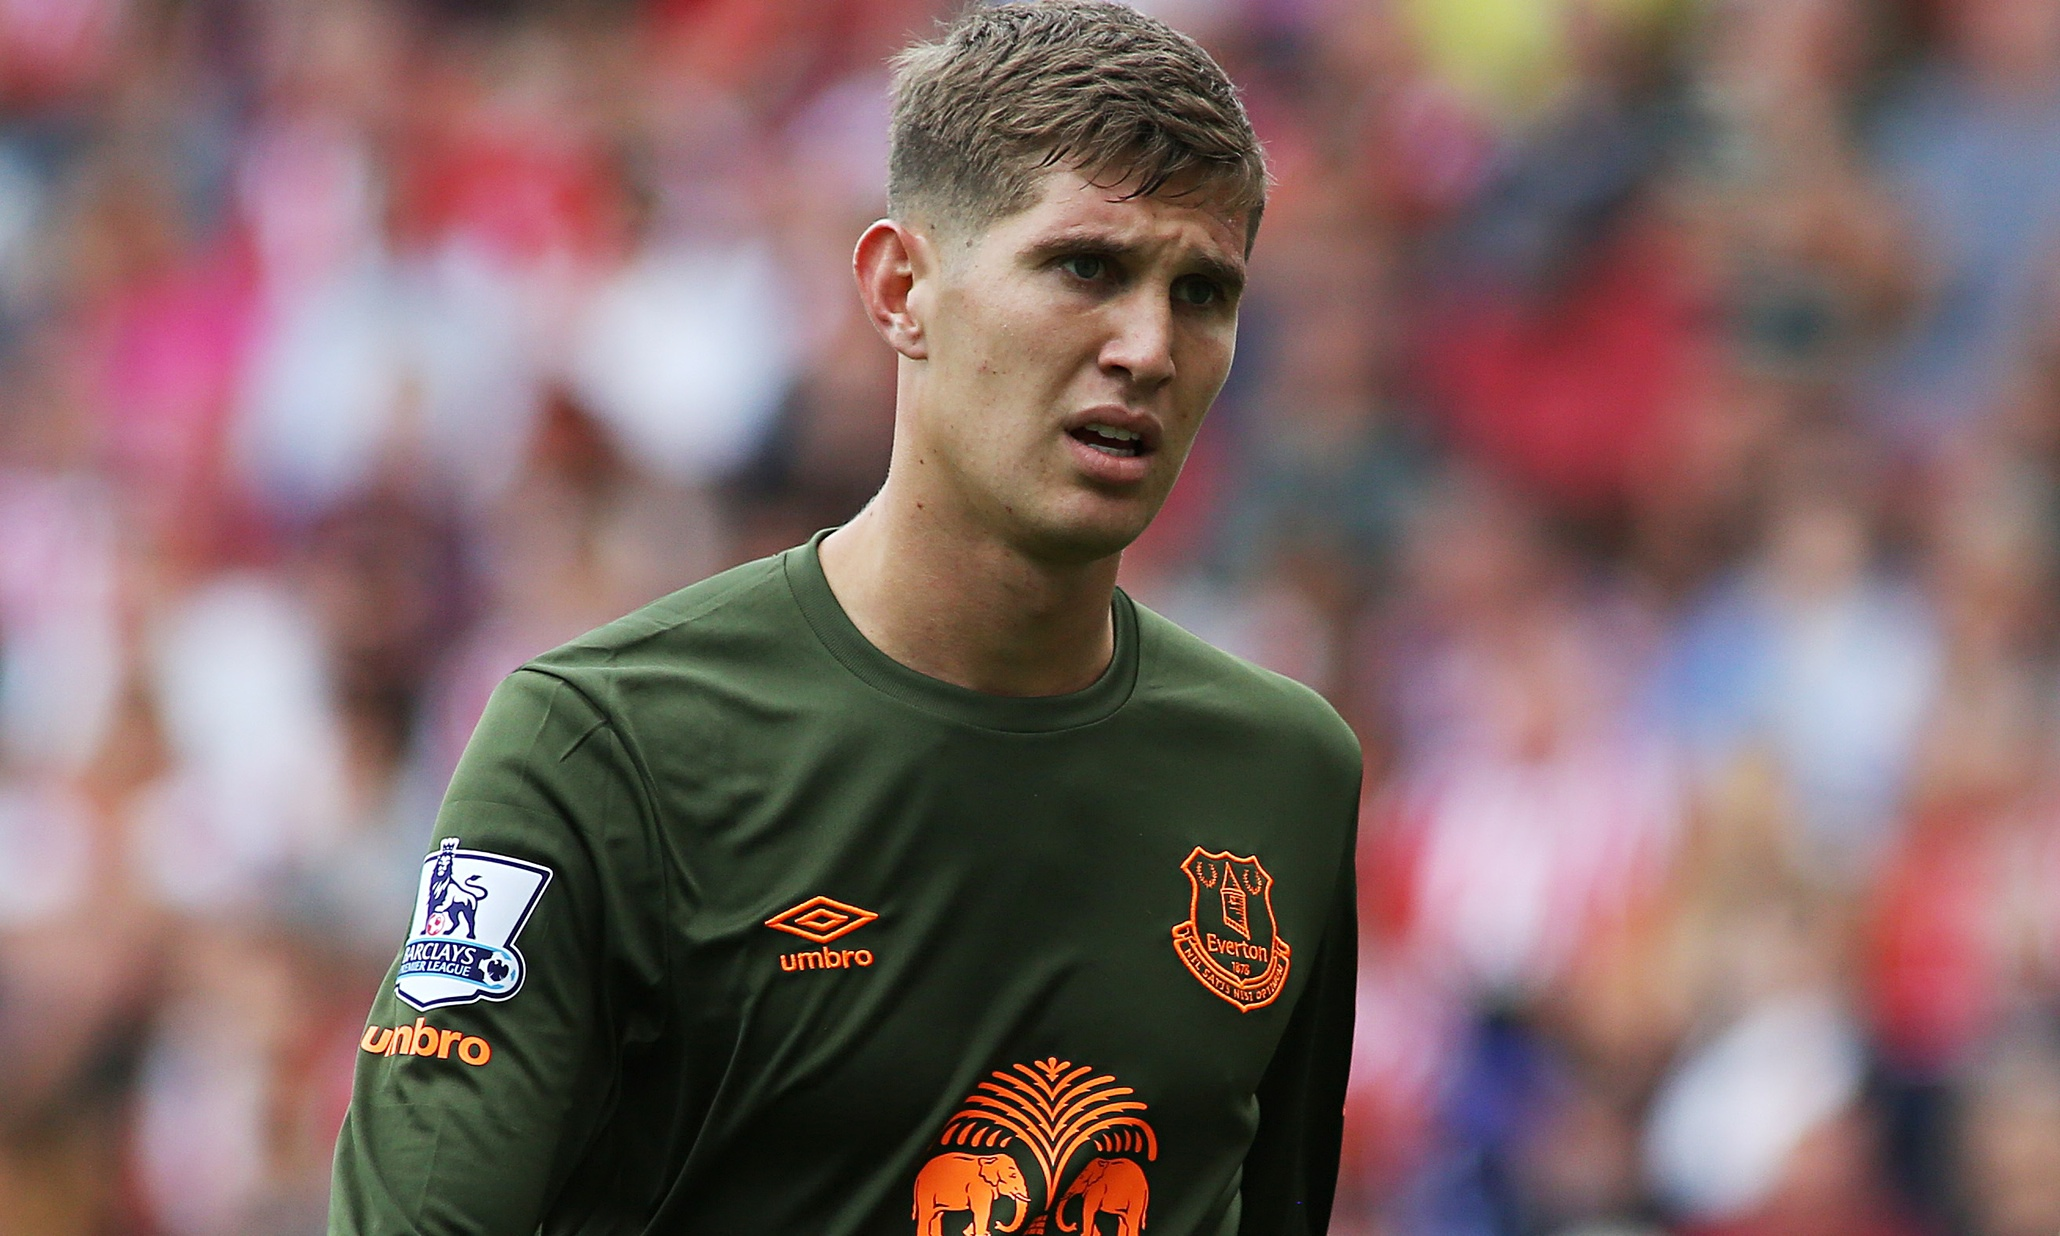 Everton fans claim good riddance to overrated John Stones